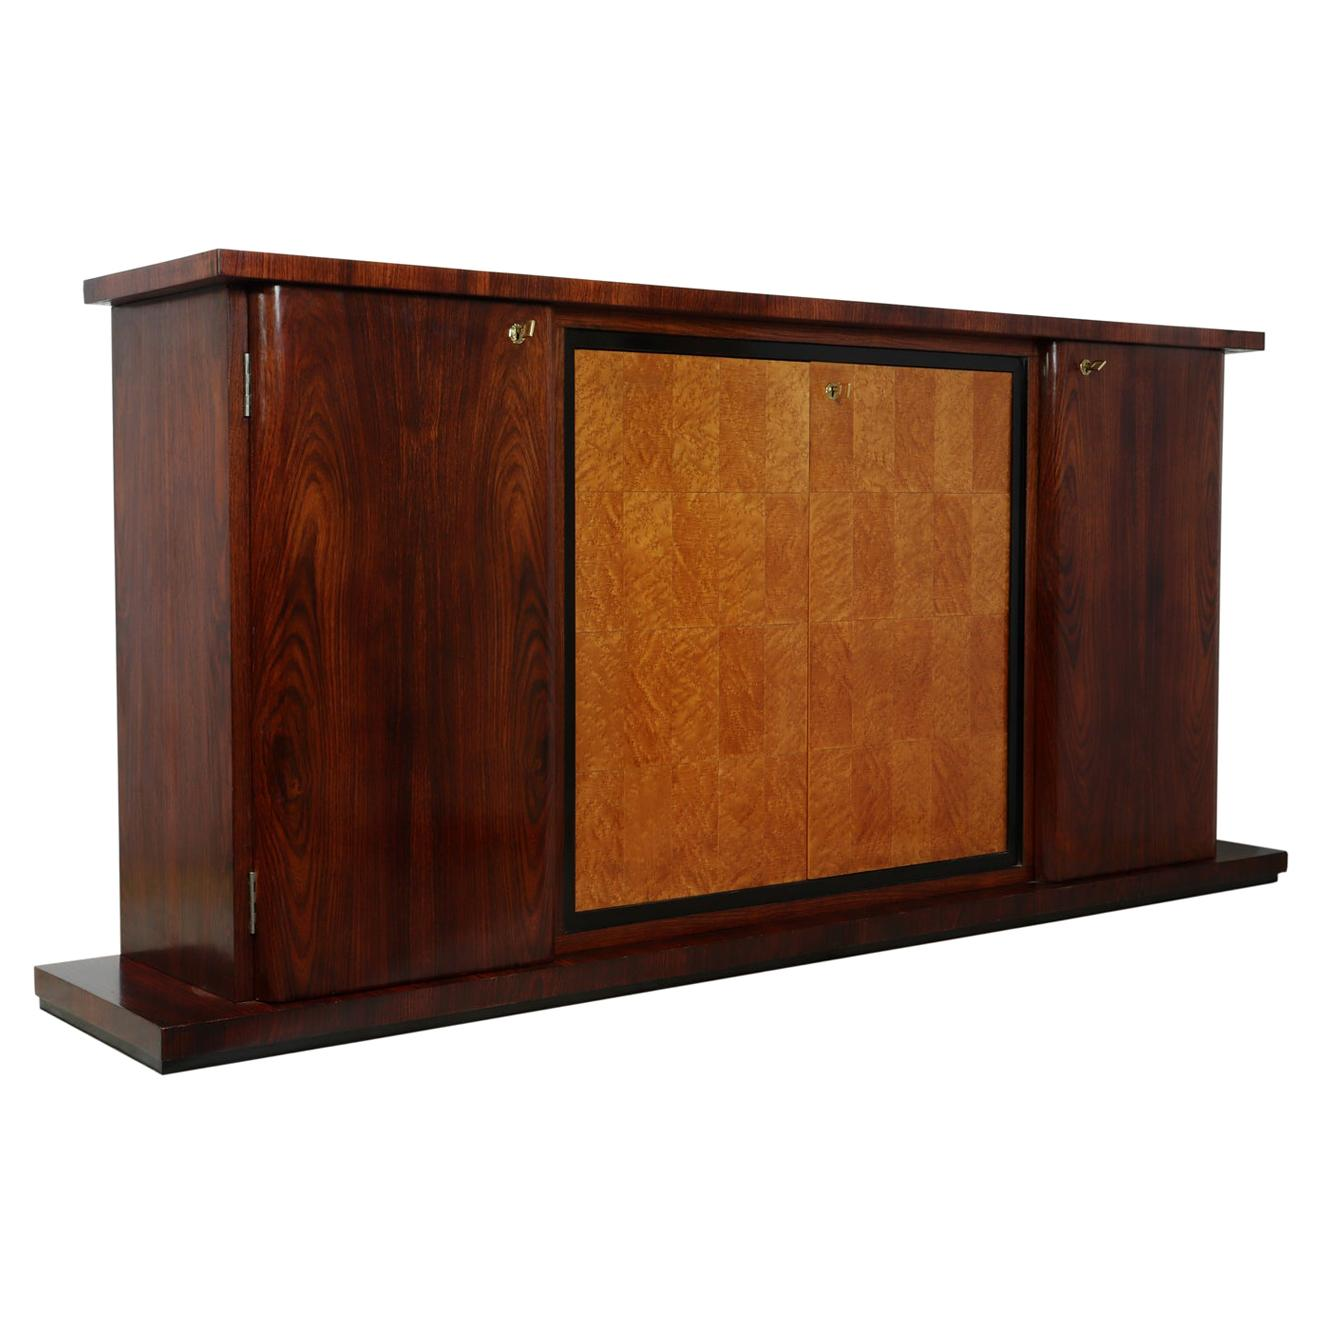 Antique And Vintage Secretaires 1495 For Sale At 1stdibs >> 1930s Cupboards 53 For Sale At 1stdibs